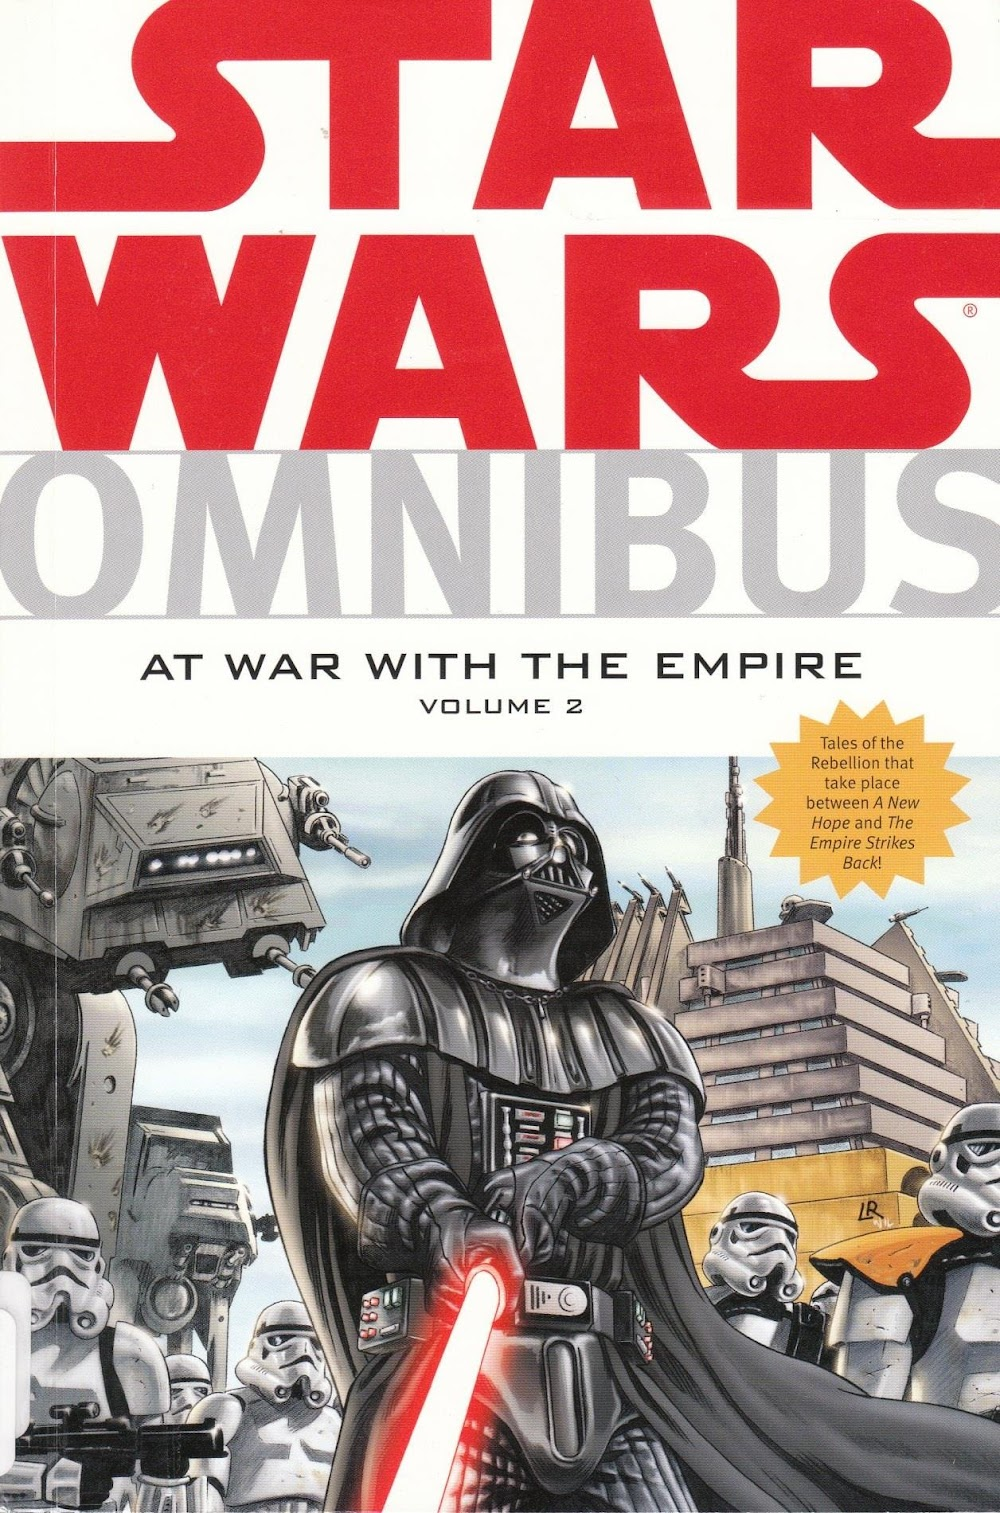 Star Wars Omnibus - At War with the Empire Vol.2 (2011)